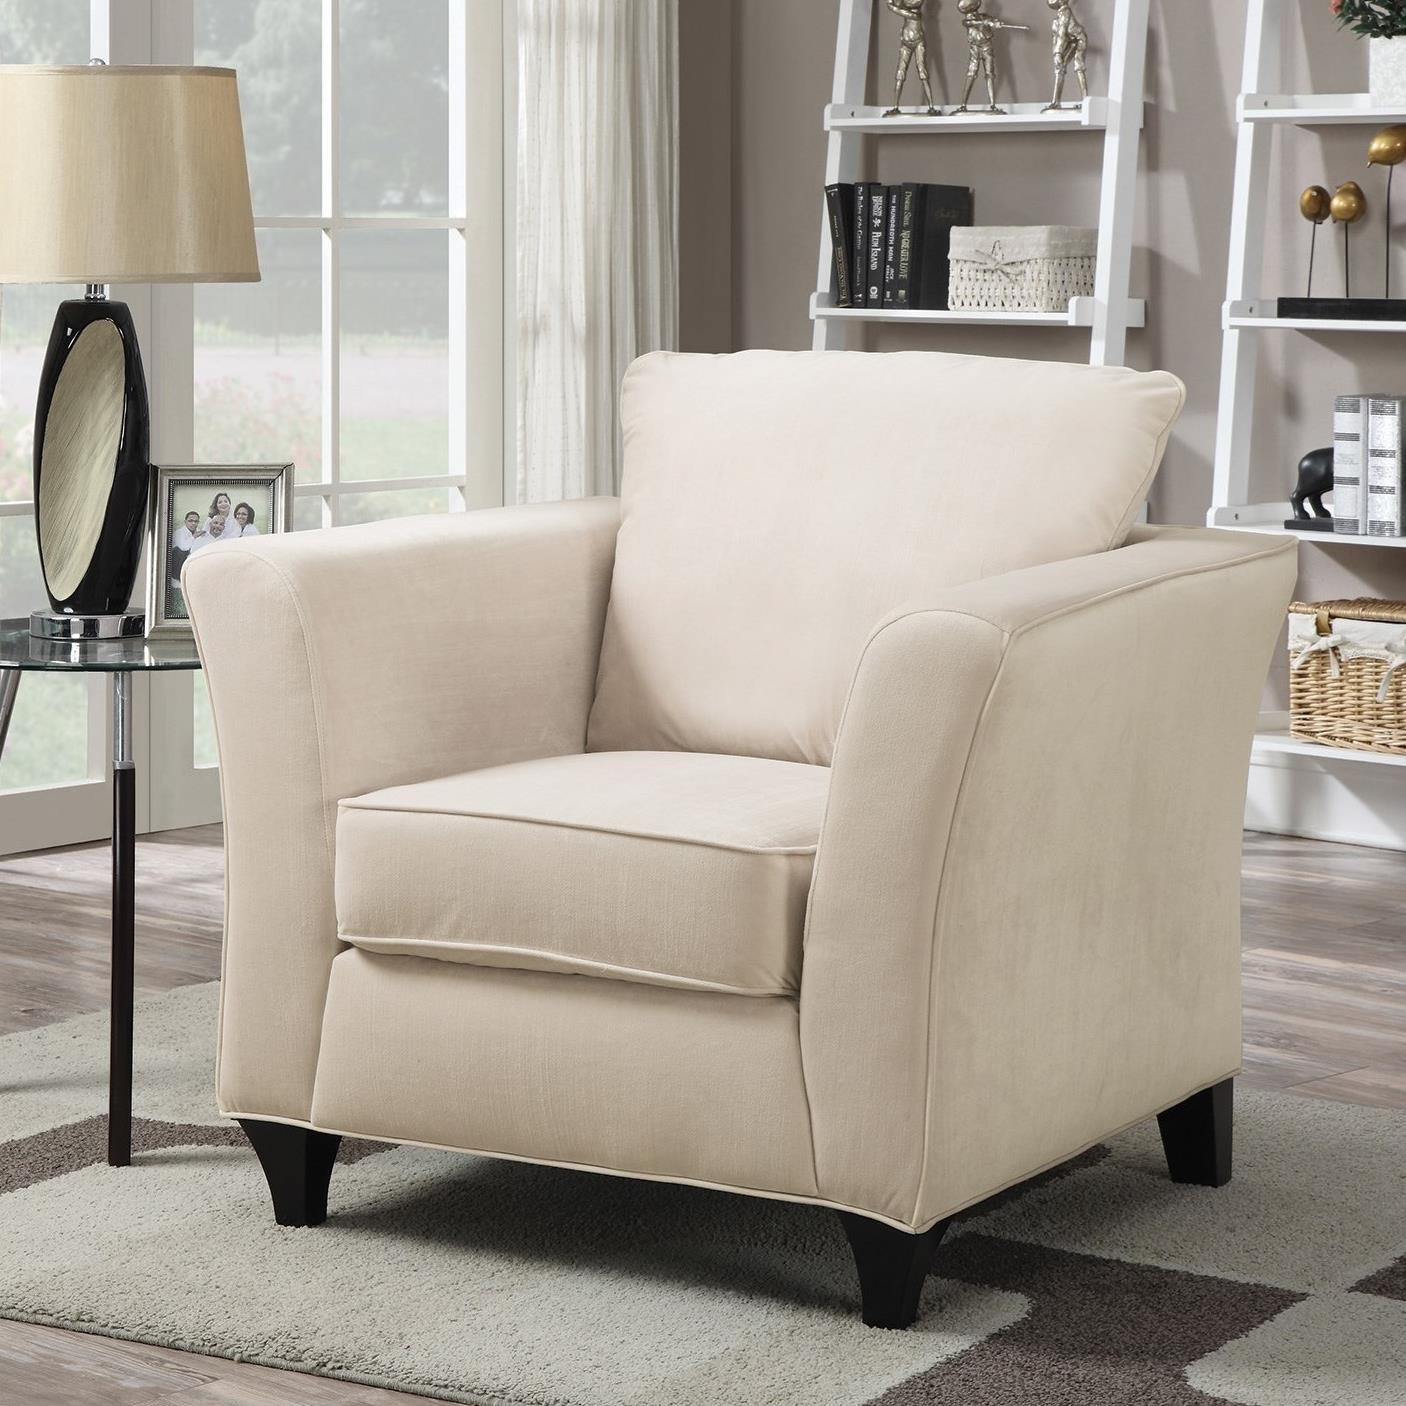 Beau Coaster Park Place Upholstered Chair With Flair Tapered Arm   Coaster Fine  Furniture